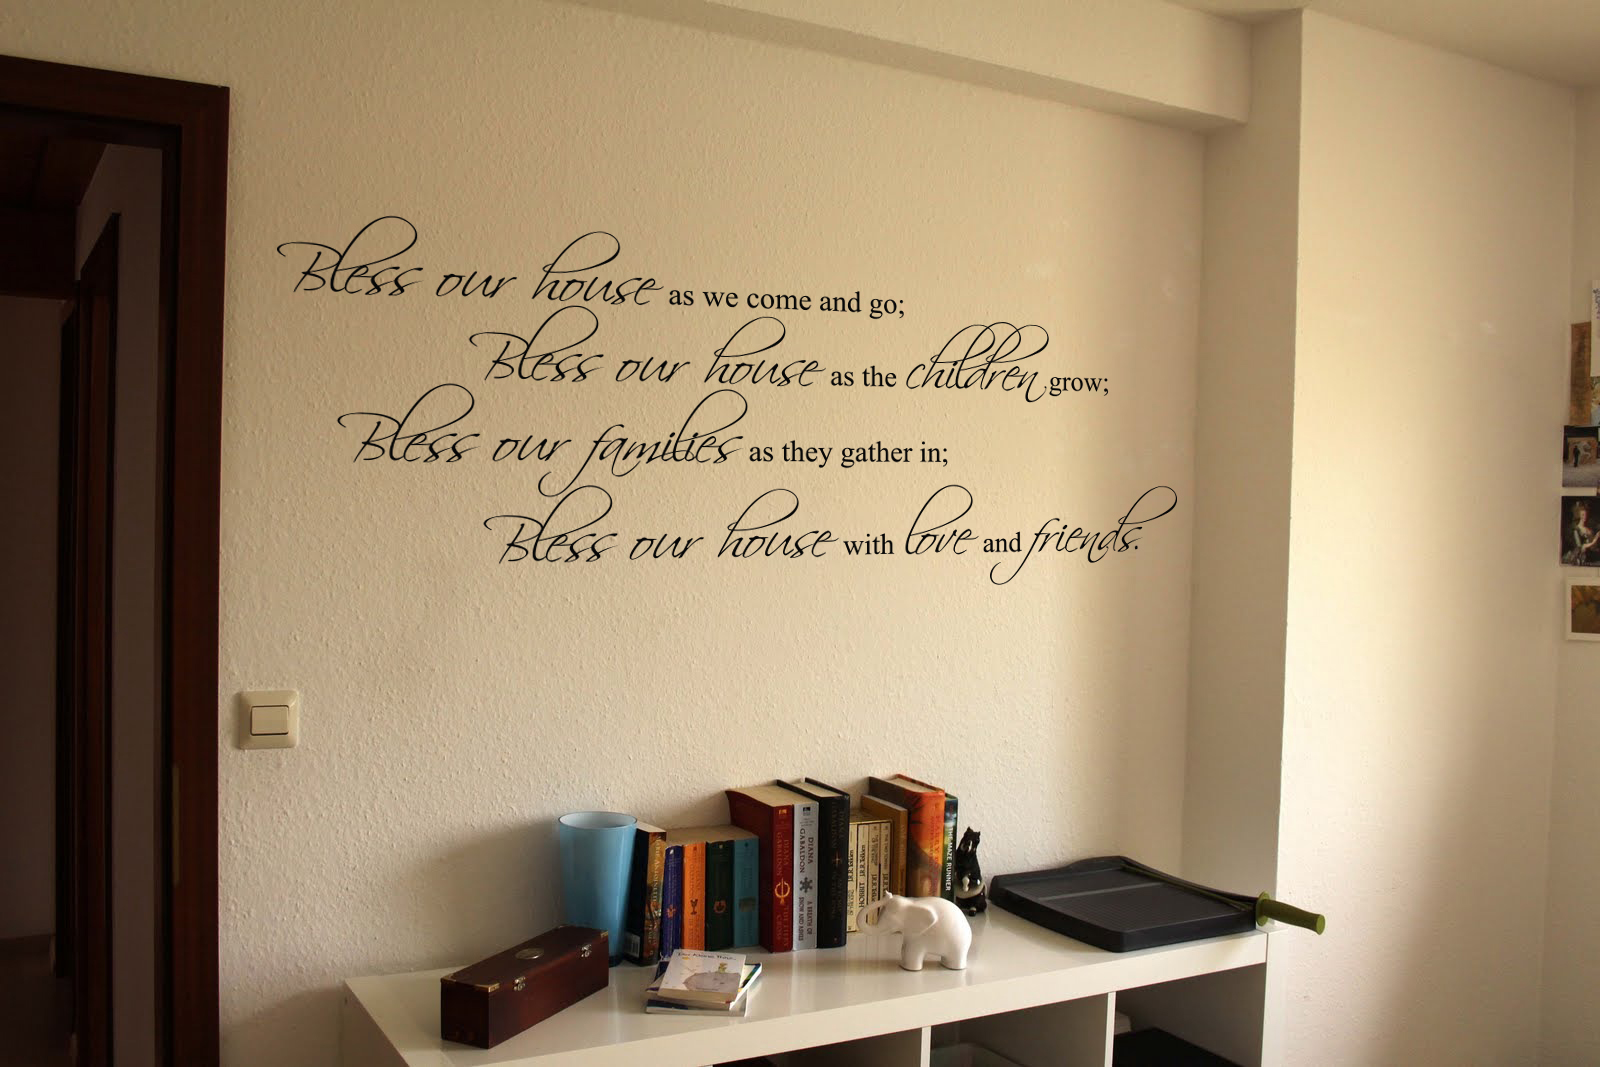 Bless Our House Bless Our Families Wall Decal